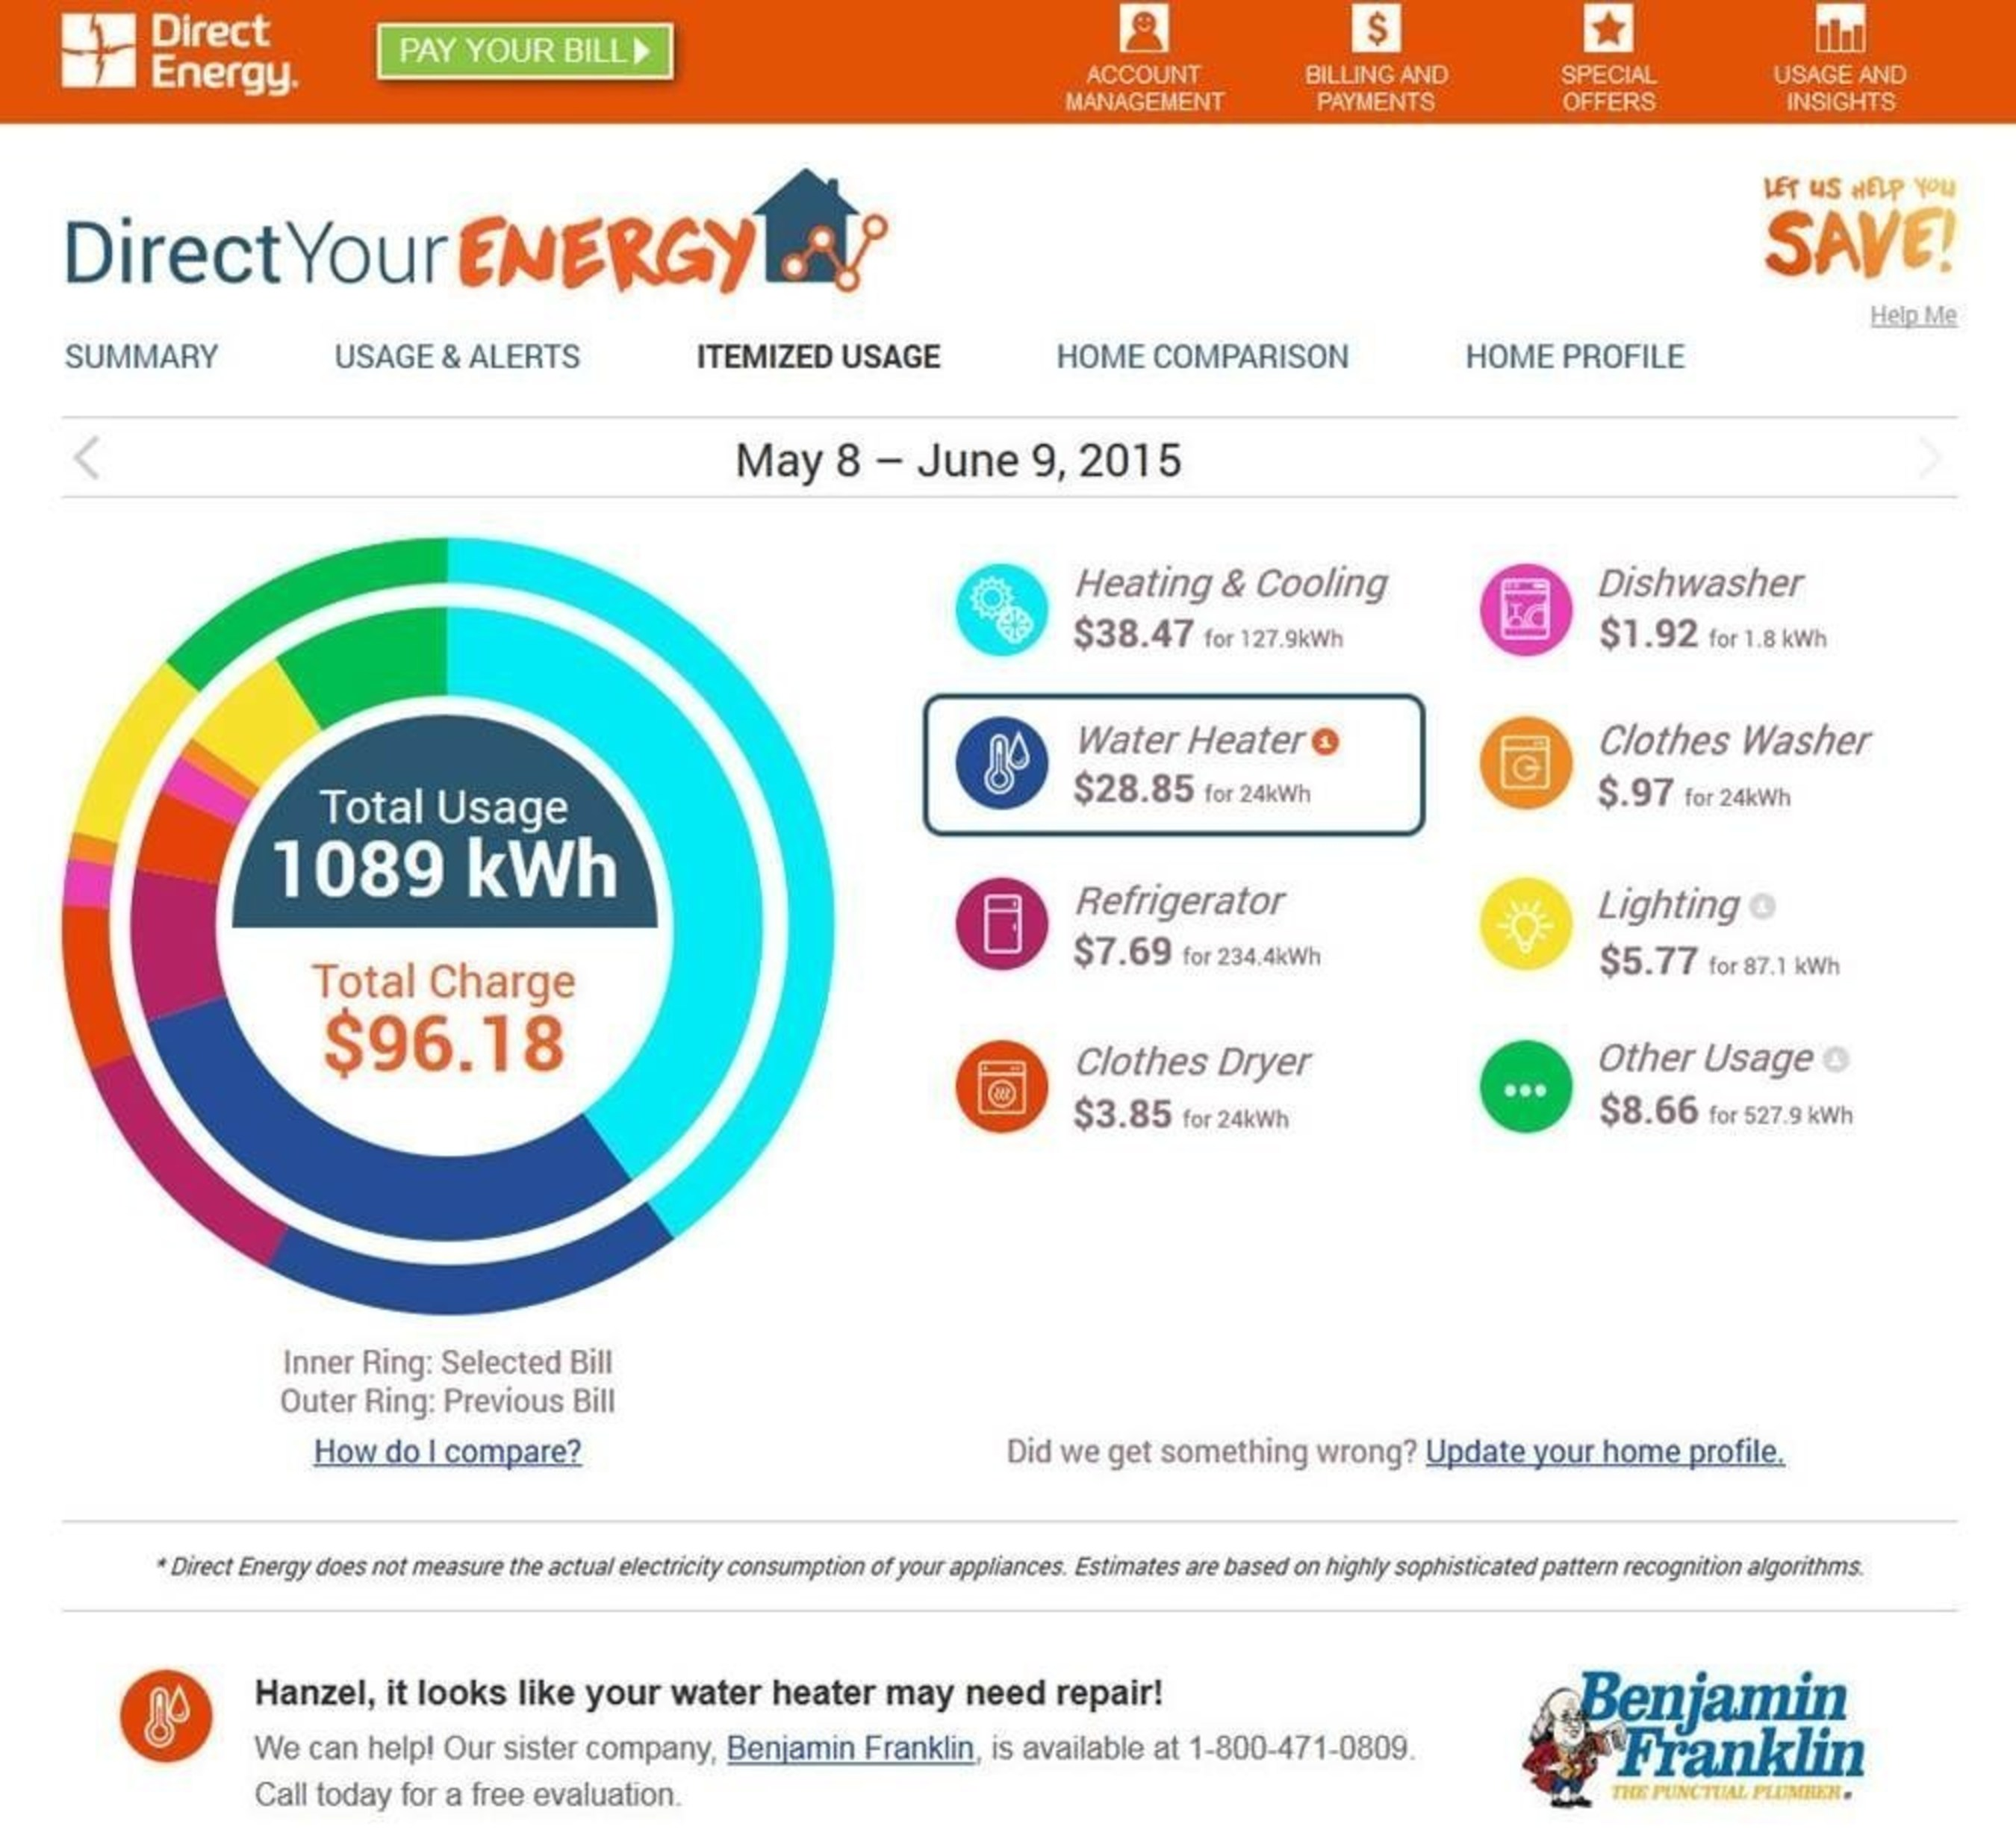 Direct Energy Unveils First-of-its-kind Itemized Electricity Usage for Residential Customers